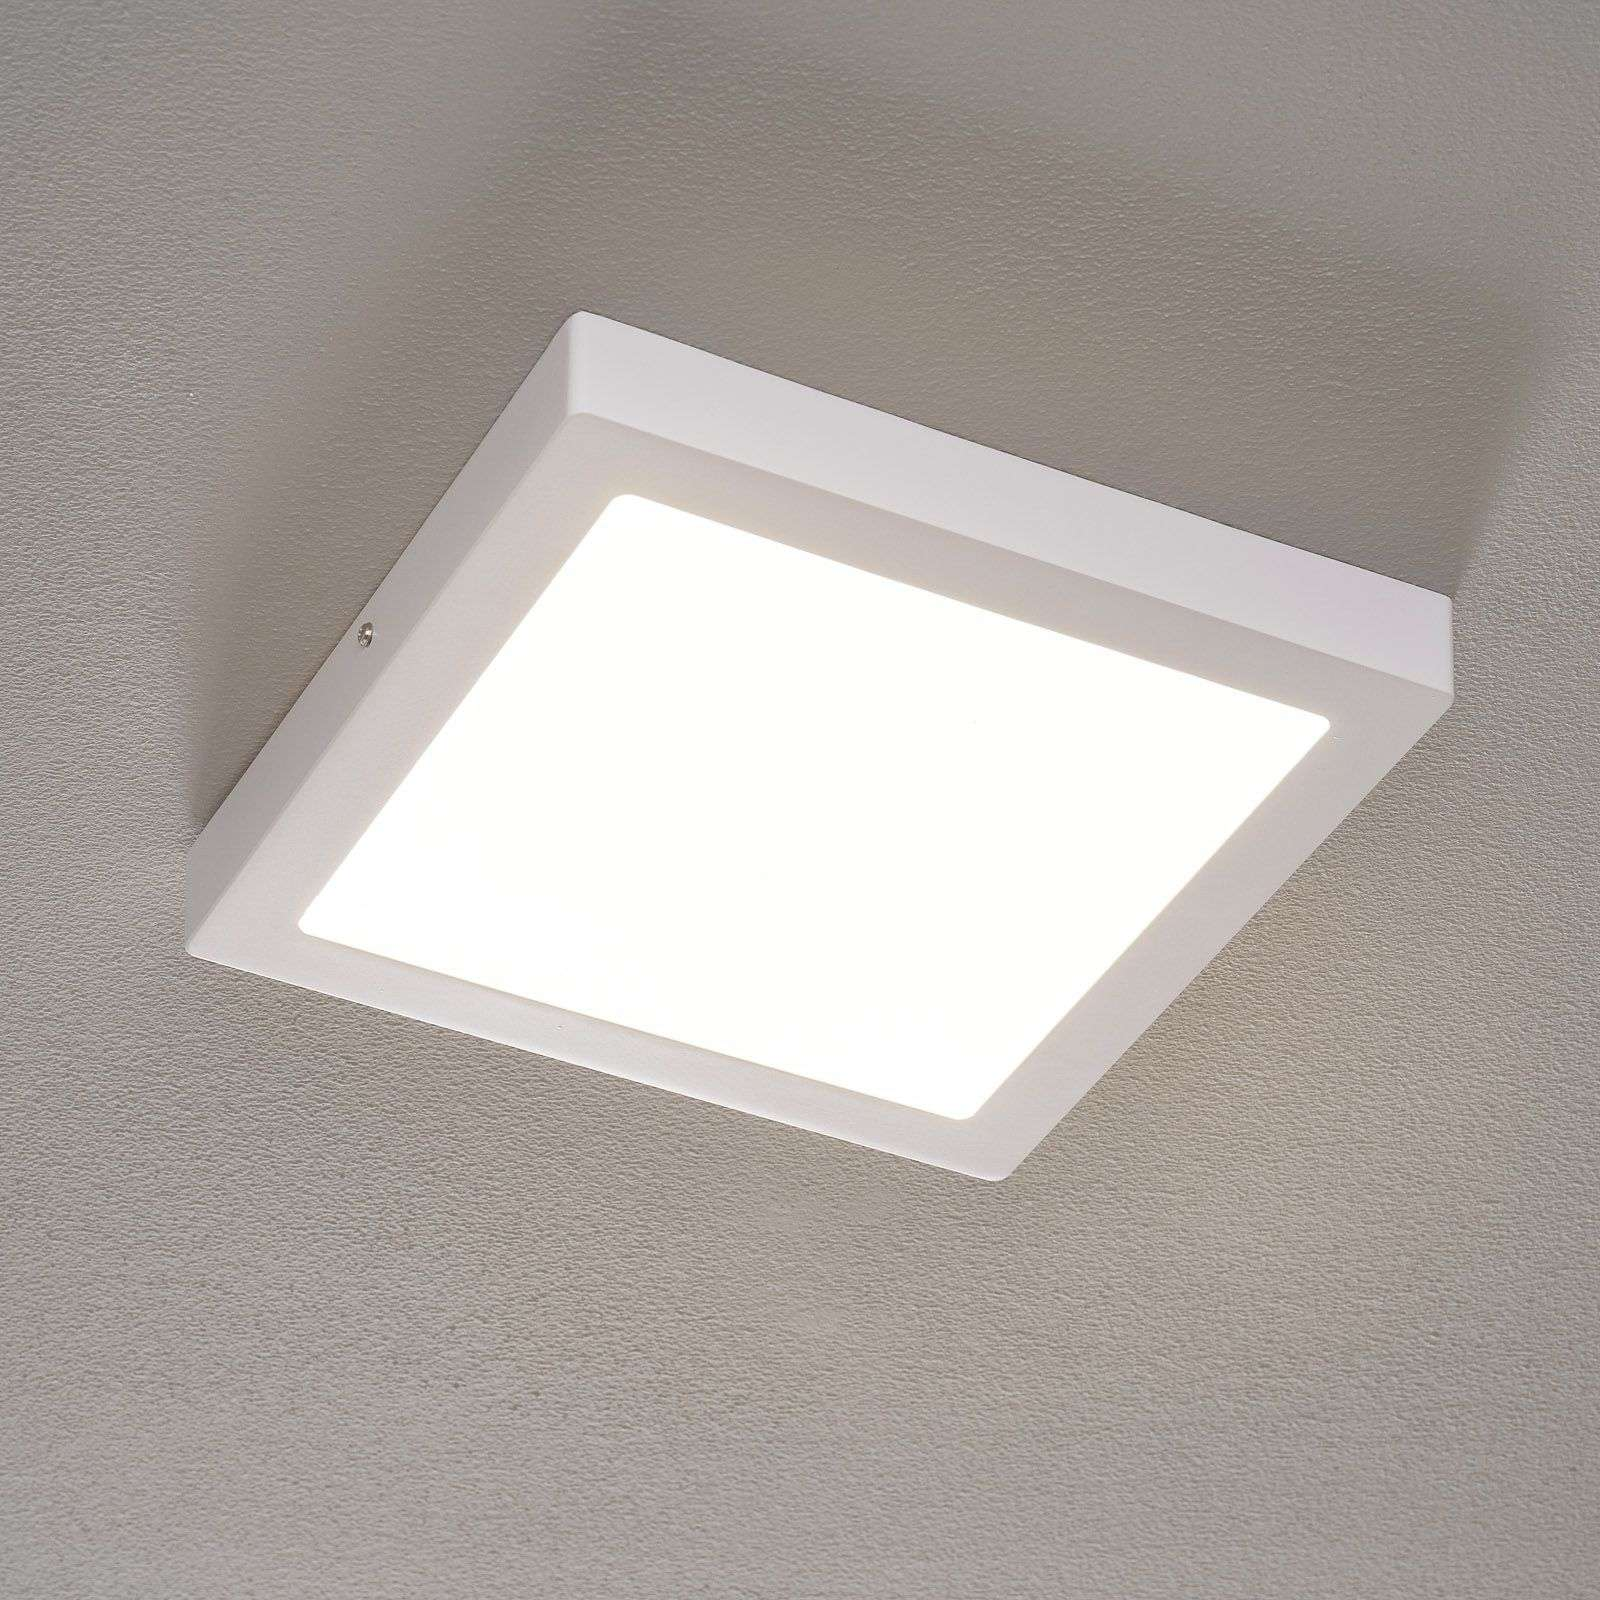 EGLO connect Fueva-C LED plafondlamp 30cm wit